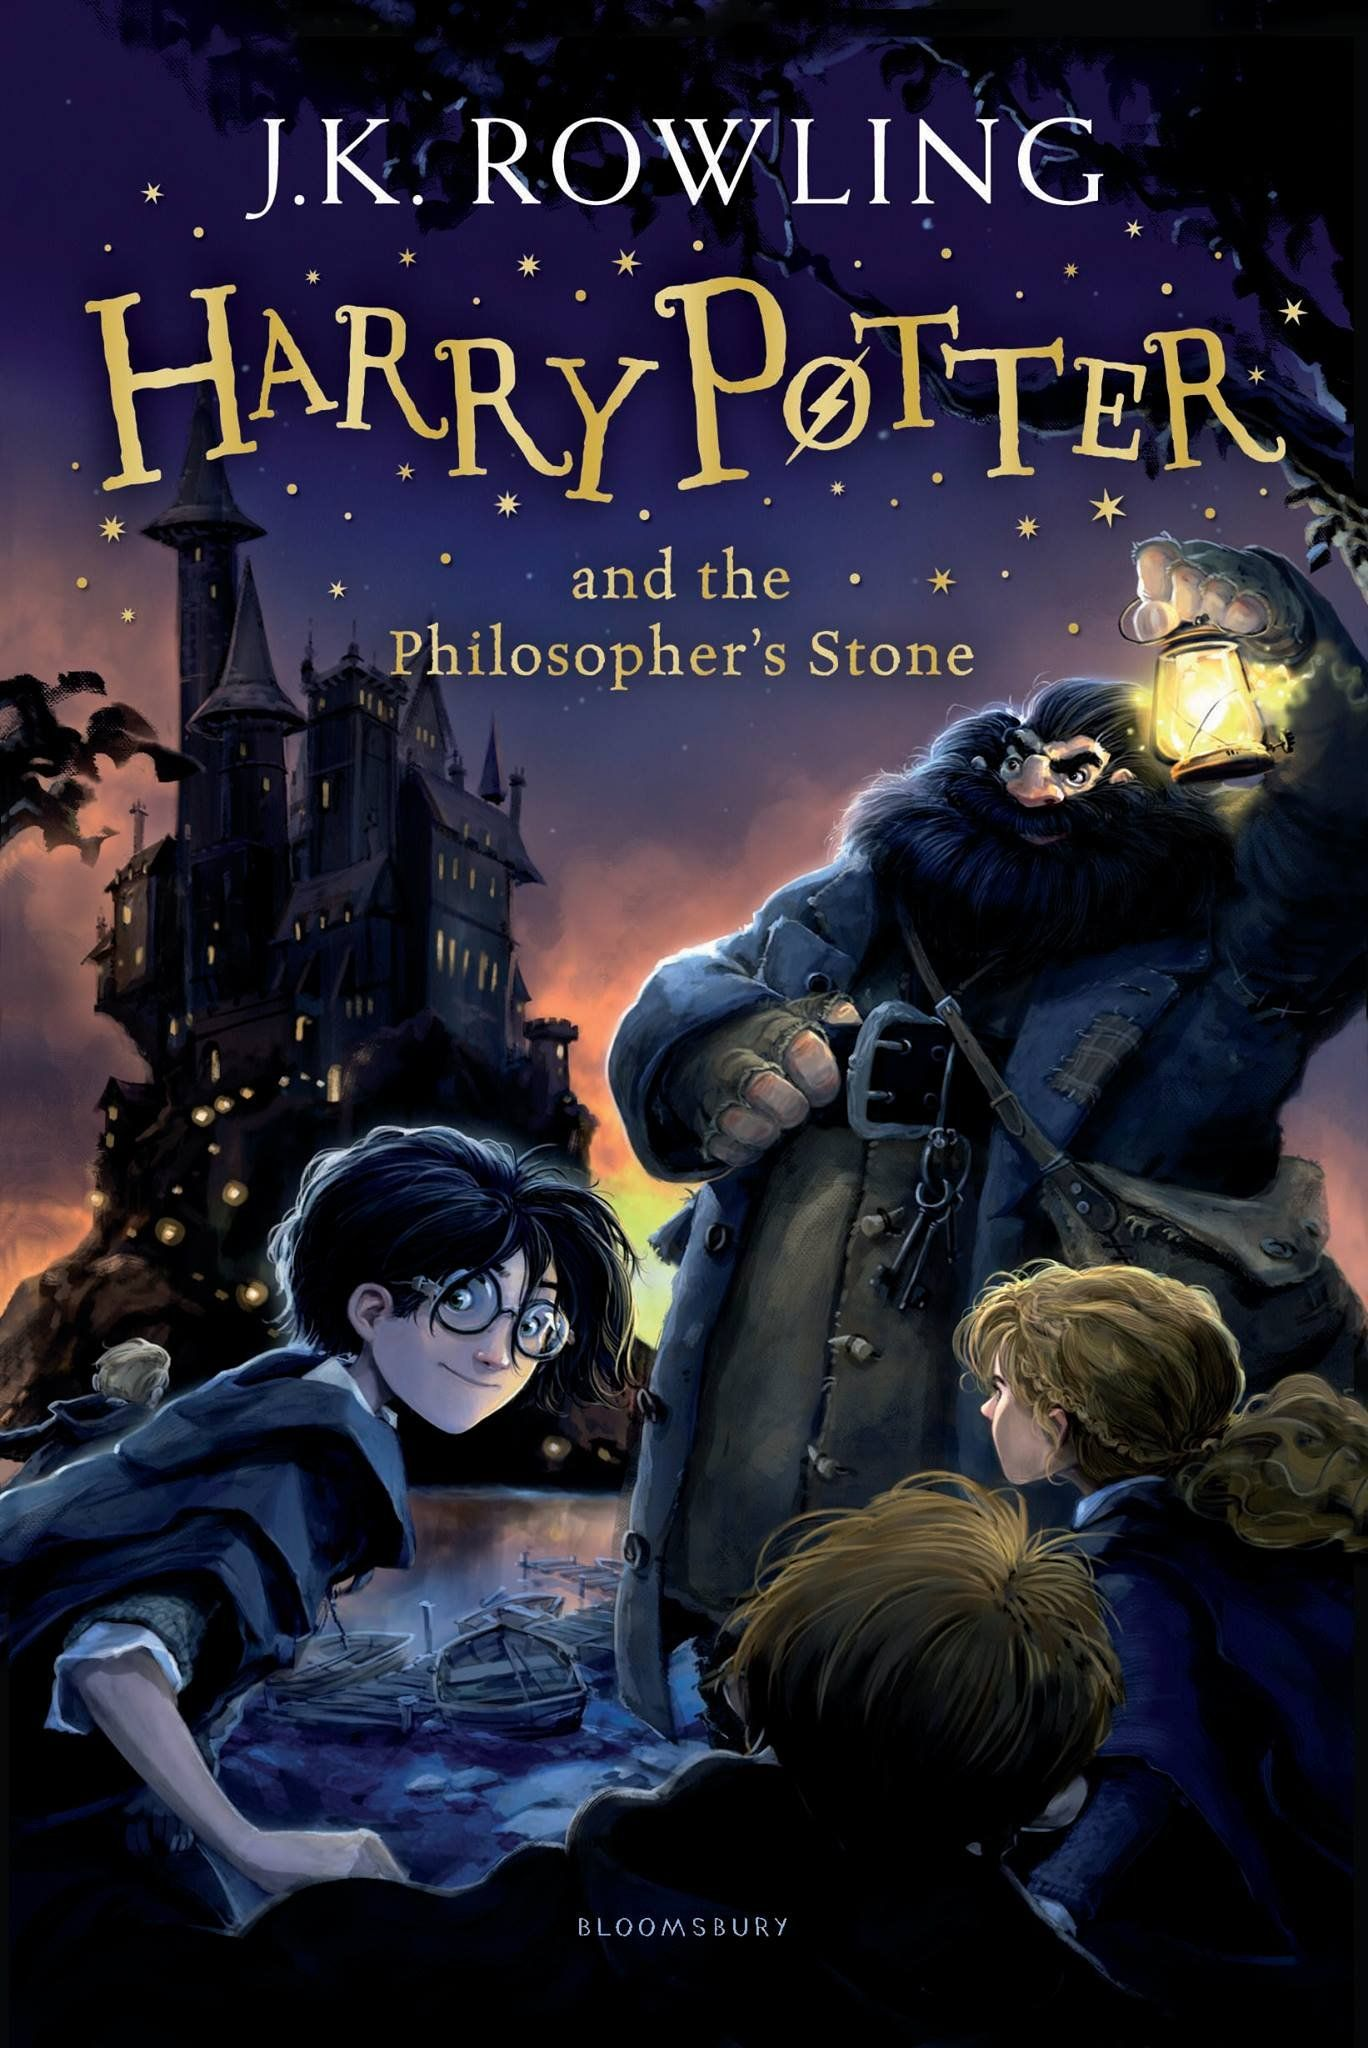 Harry Potter Book Cover Uk ~ Harry potter and the philosopher s stone uk harry potter